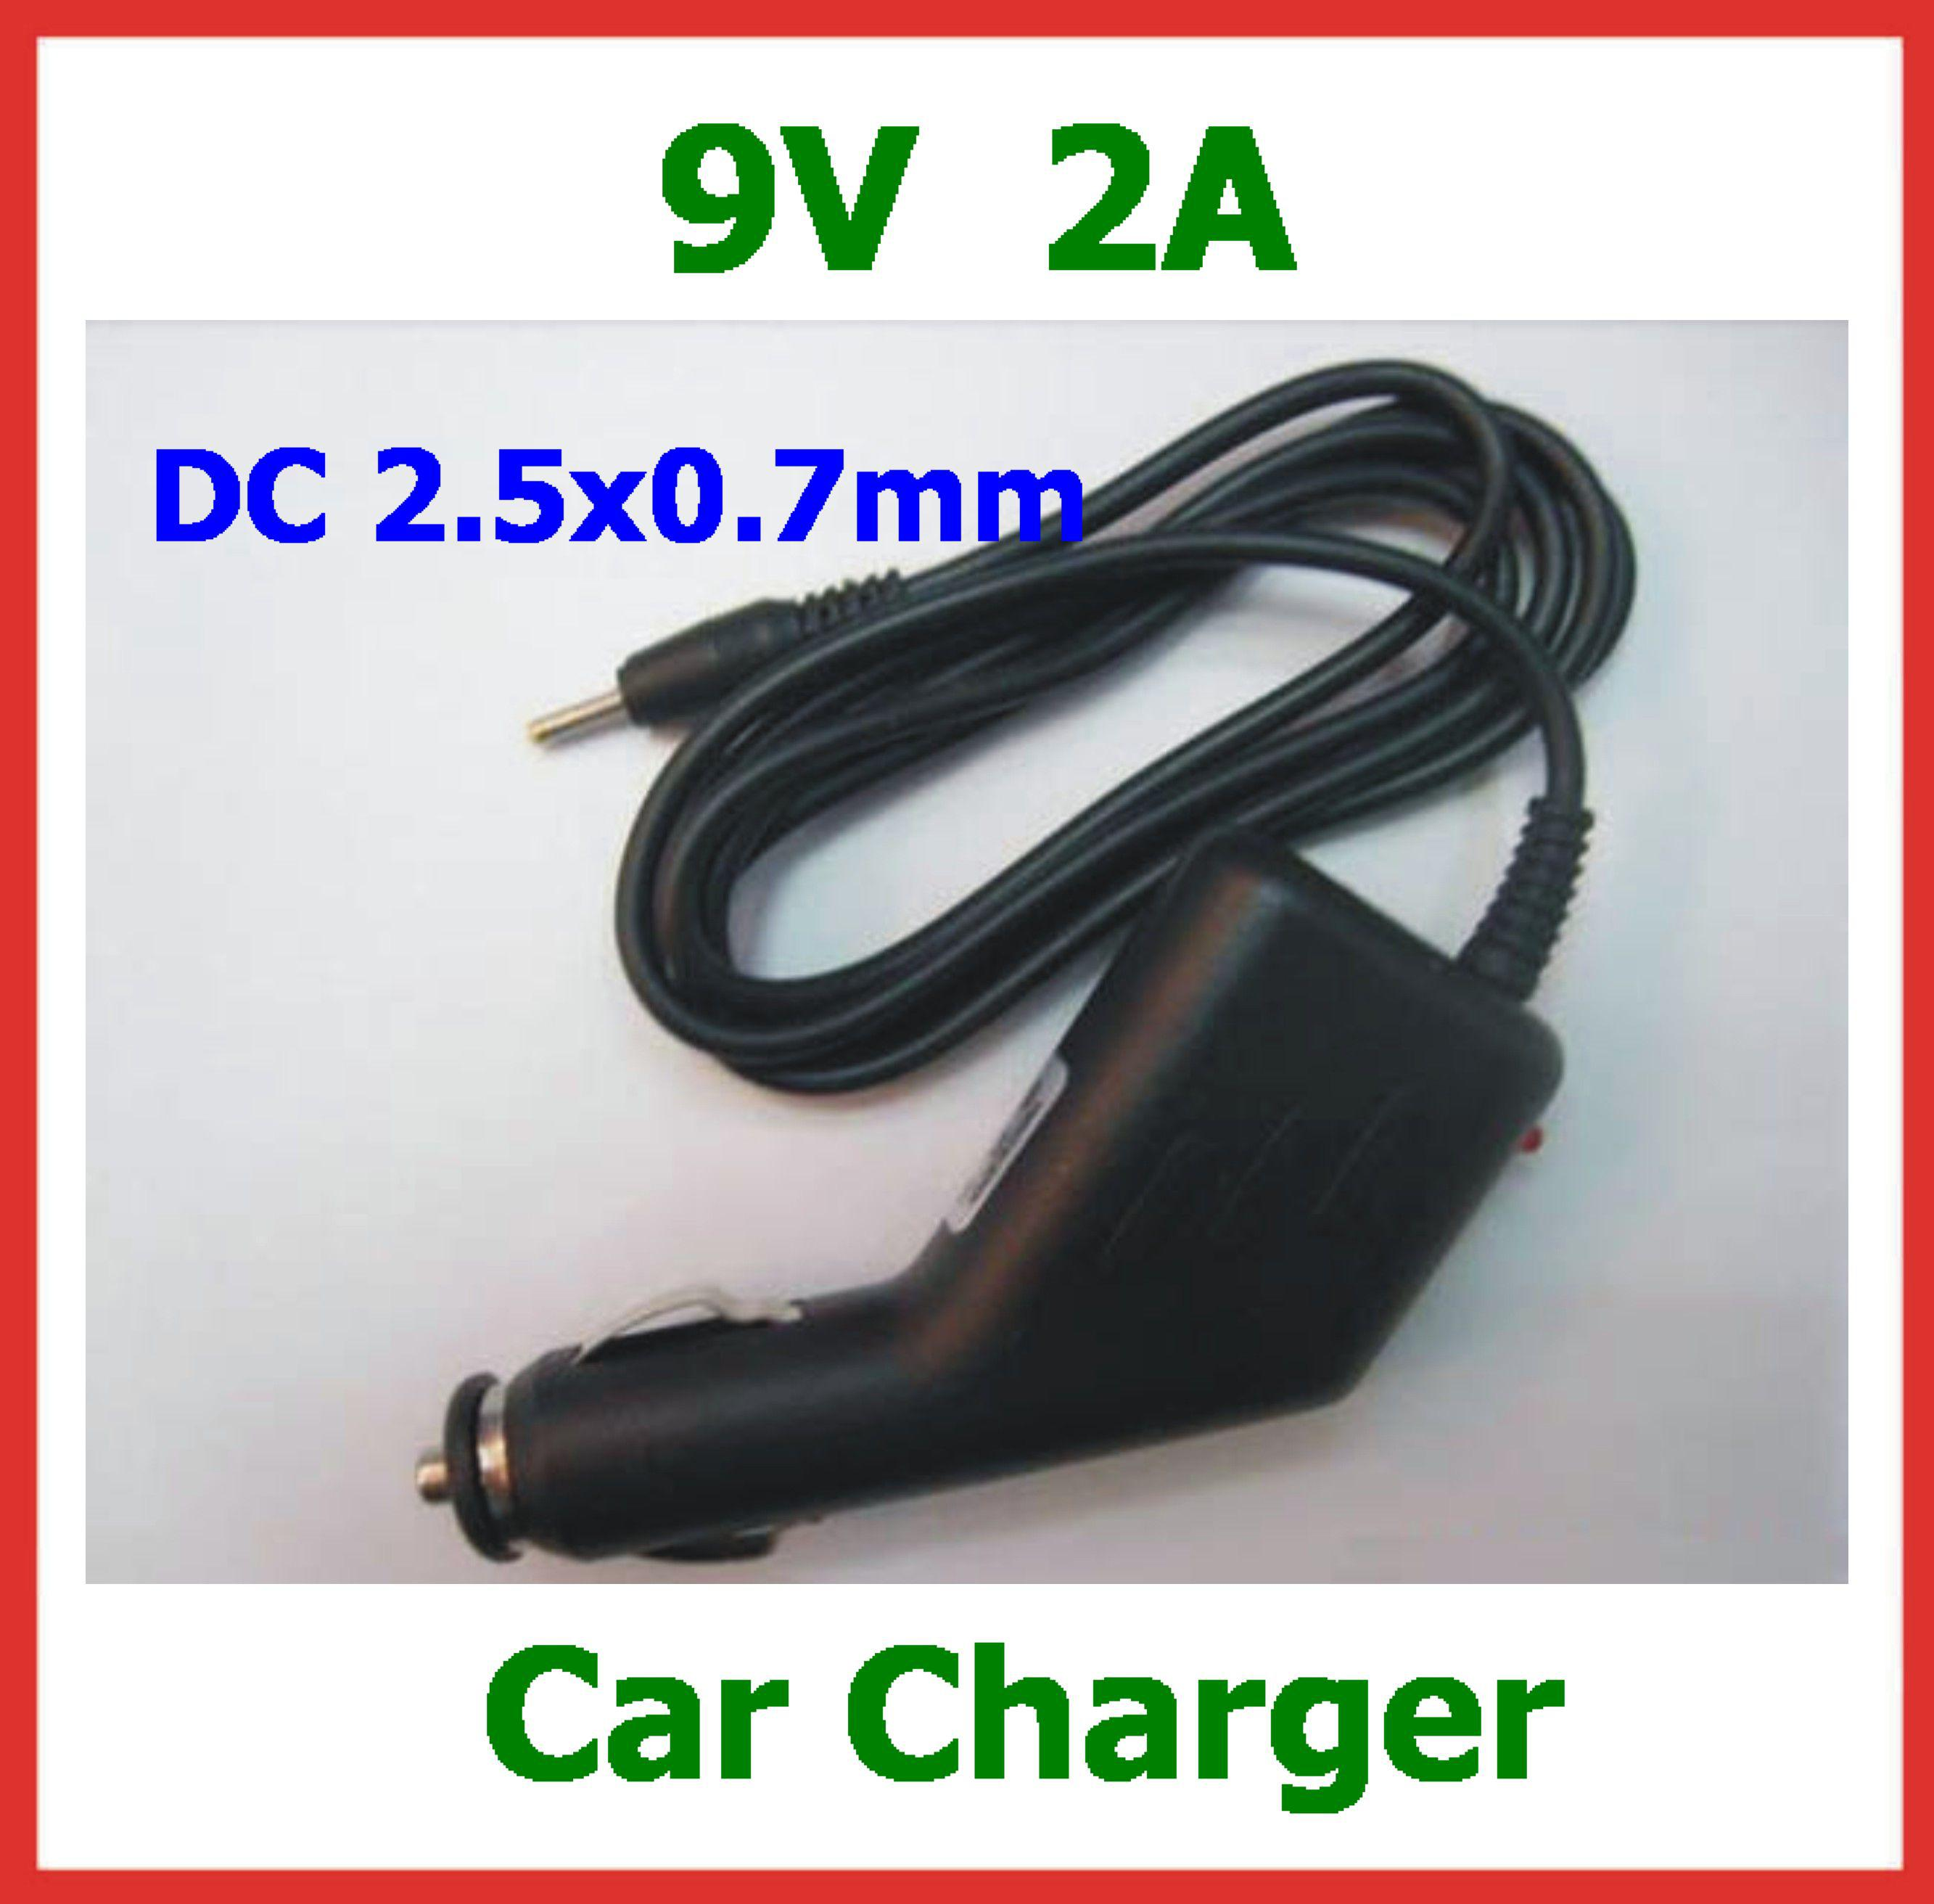 9V 2A Car Charger For Tablet PC Aoson M19 Pipo M2 M3 M8 3G Chuwi V3 SmartQ T19 T20 T30 Power Adapter Coverter Dual